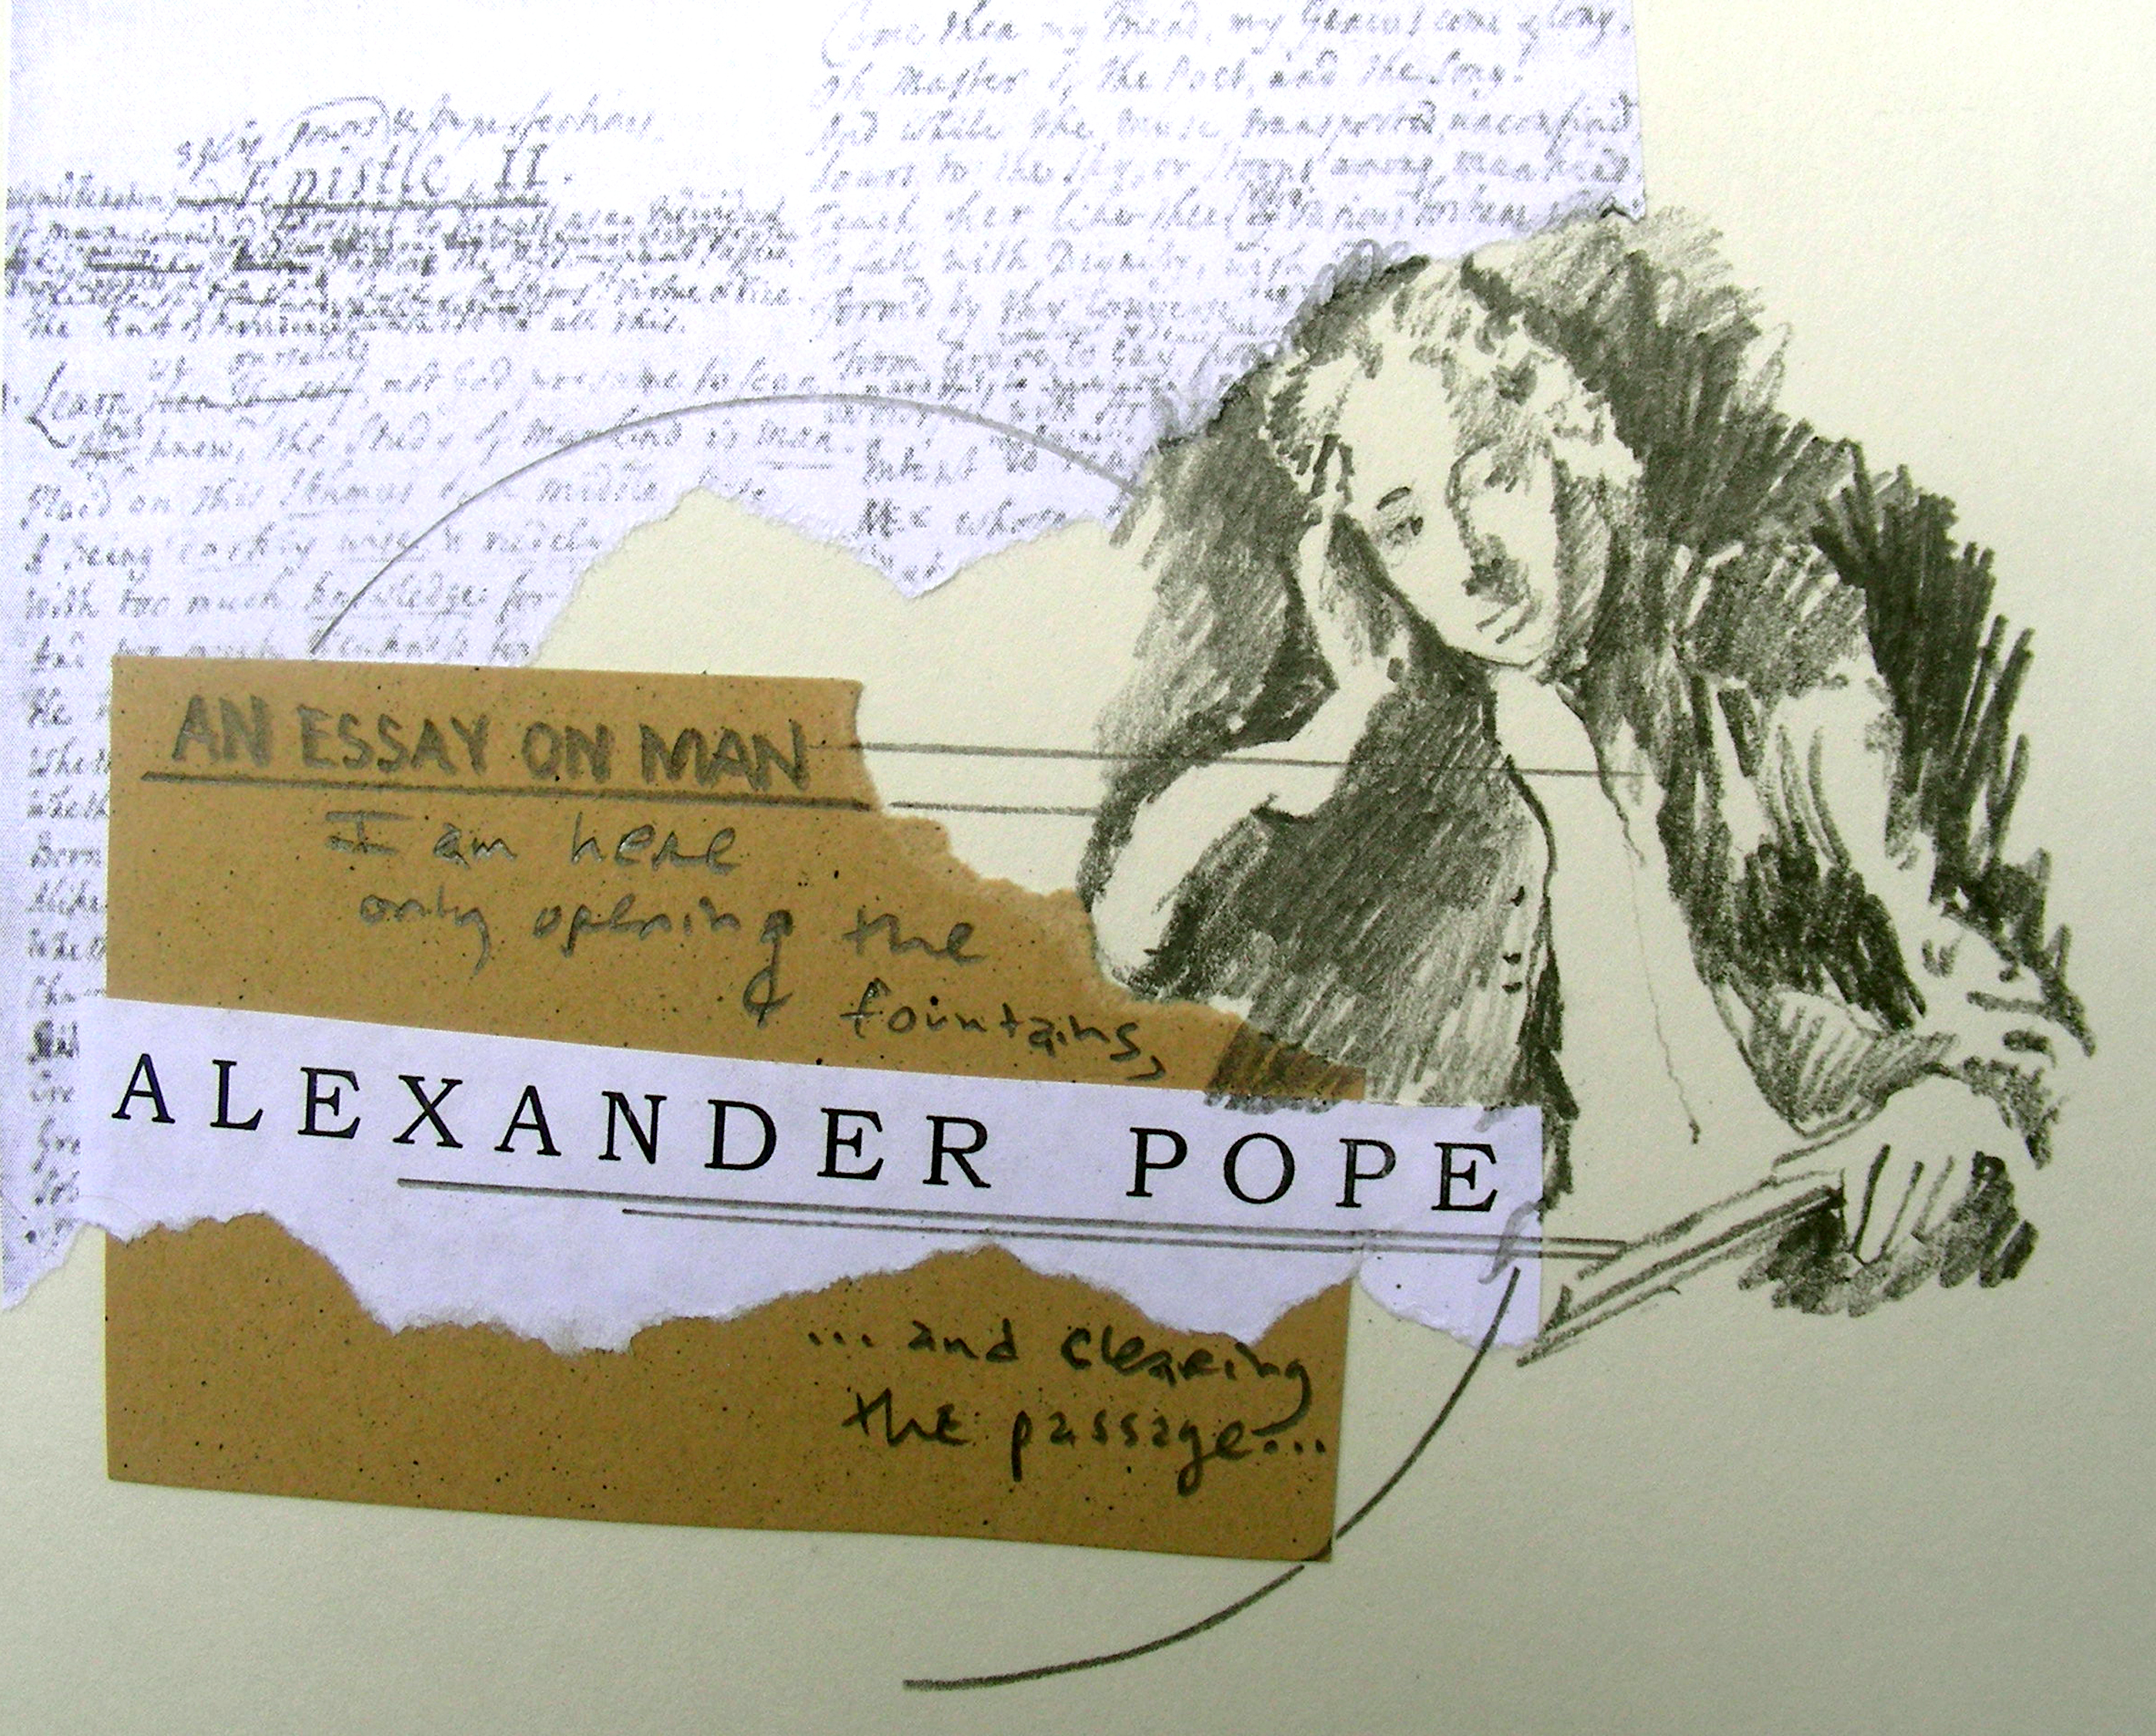 alexander pope essay on criticism text Complete summary of alexander pope's an essay on criticism enotes plot summaries cover all the significant action of an essay on criticism.